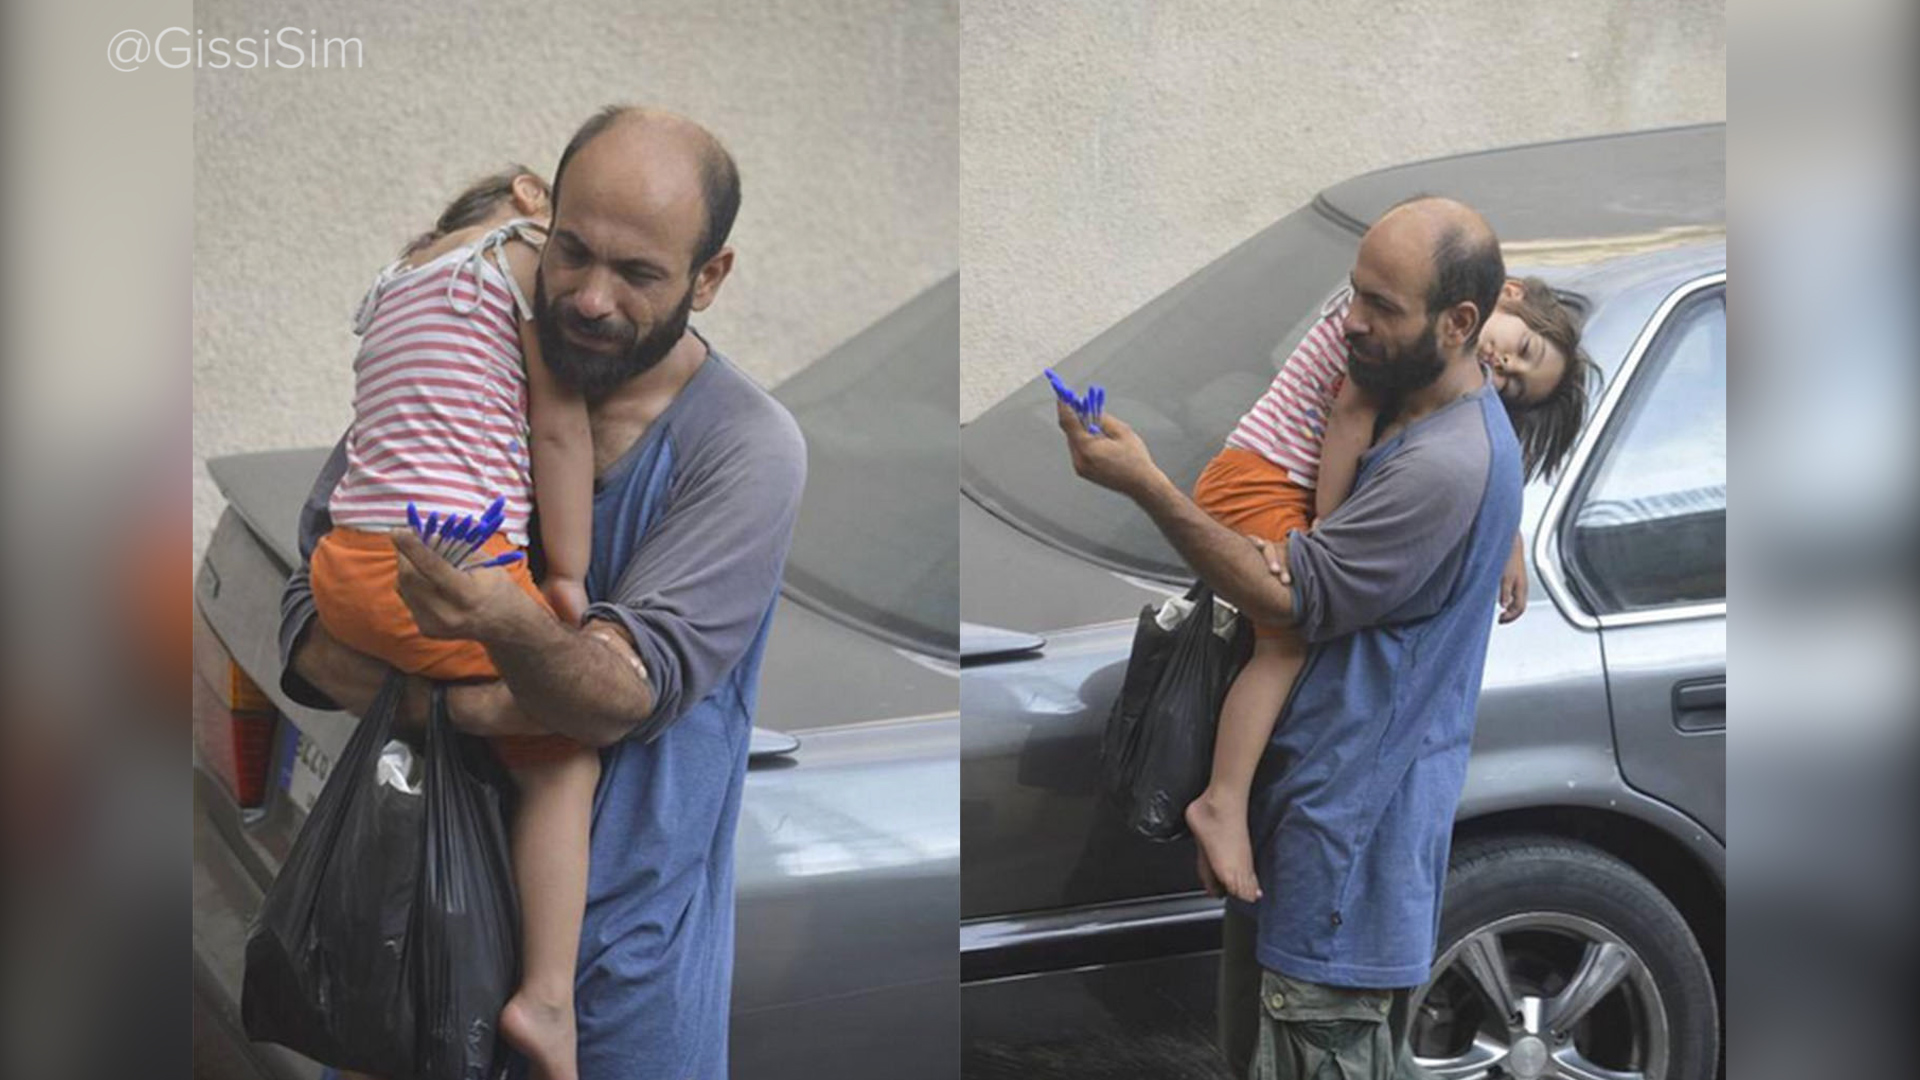 People Found This Syrian Man After His Photo Went Viral